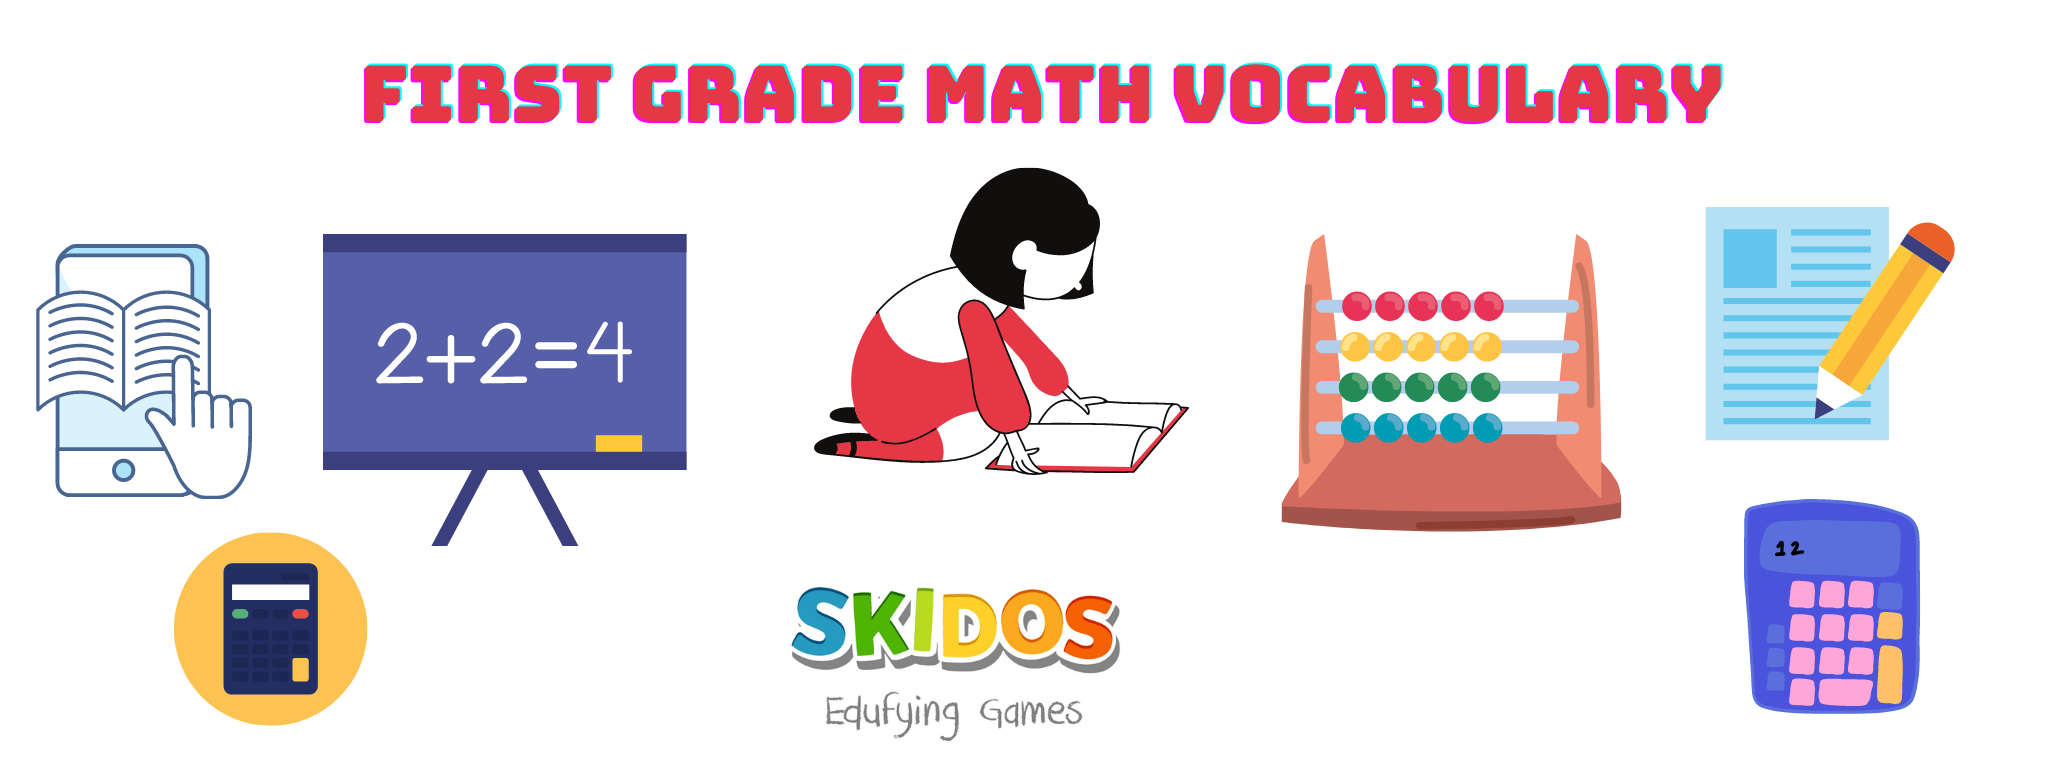 First Grade Math Vocabulary: Definitions & Easy Explanation for Kids